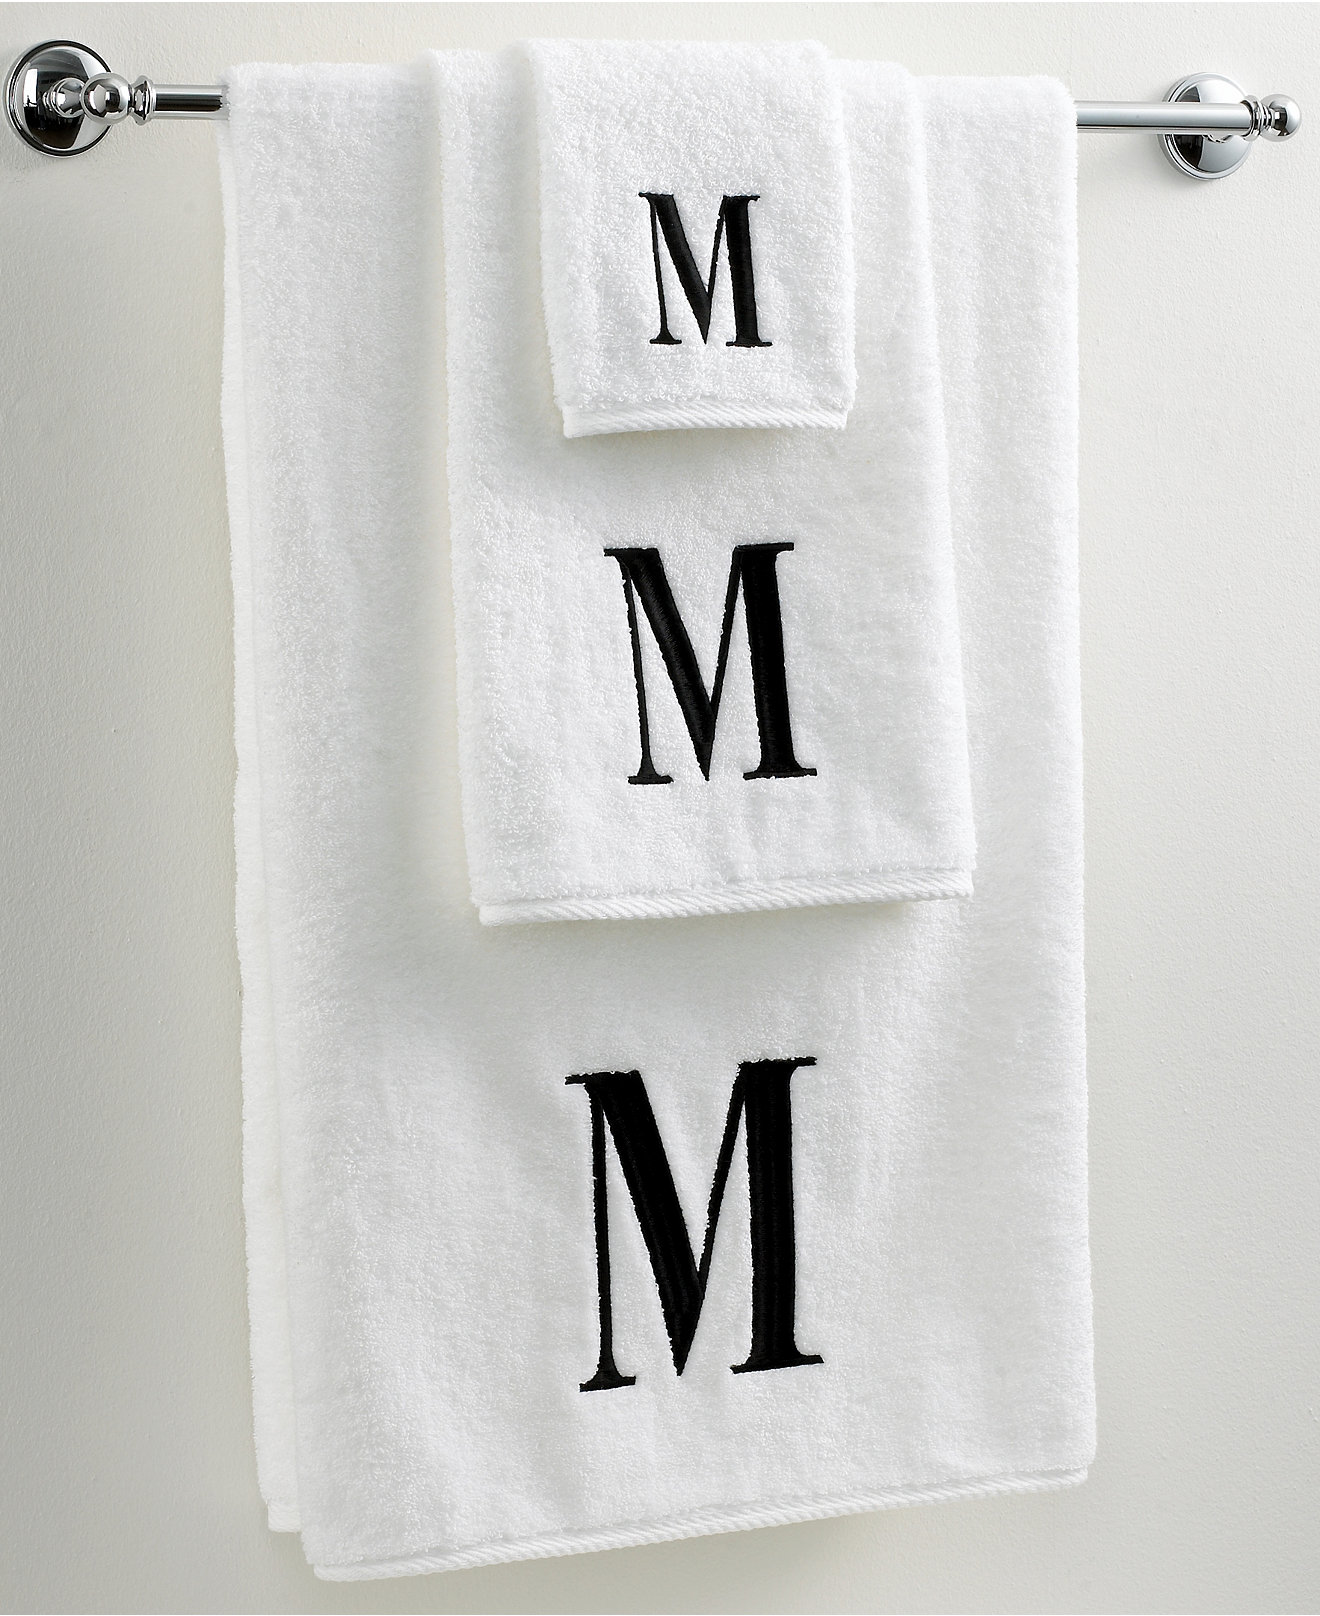 White apron macy's - Avanti Bath Towels Initial Black And White Collection